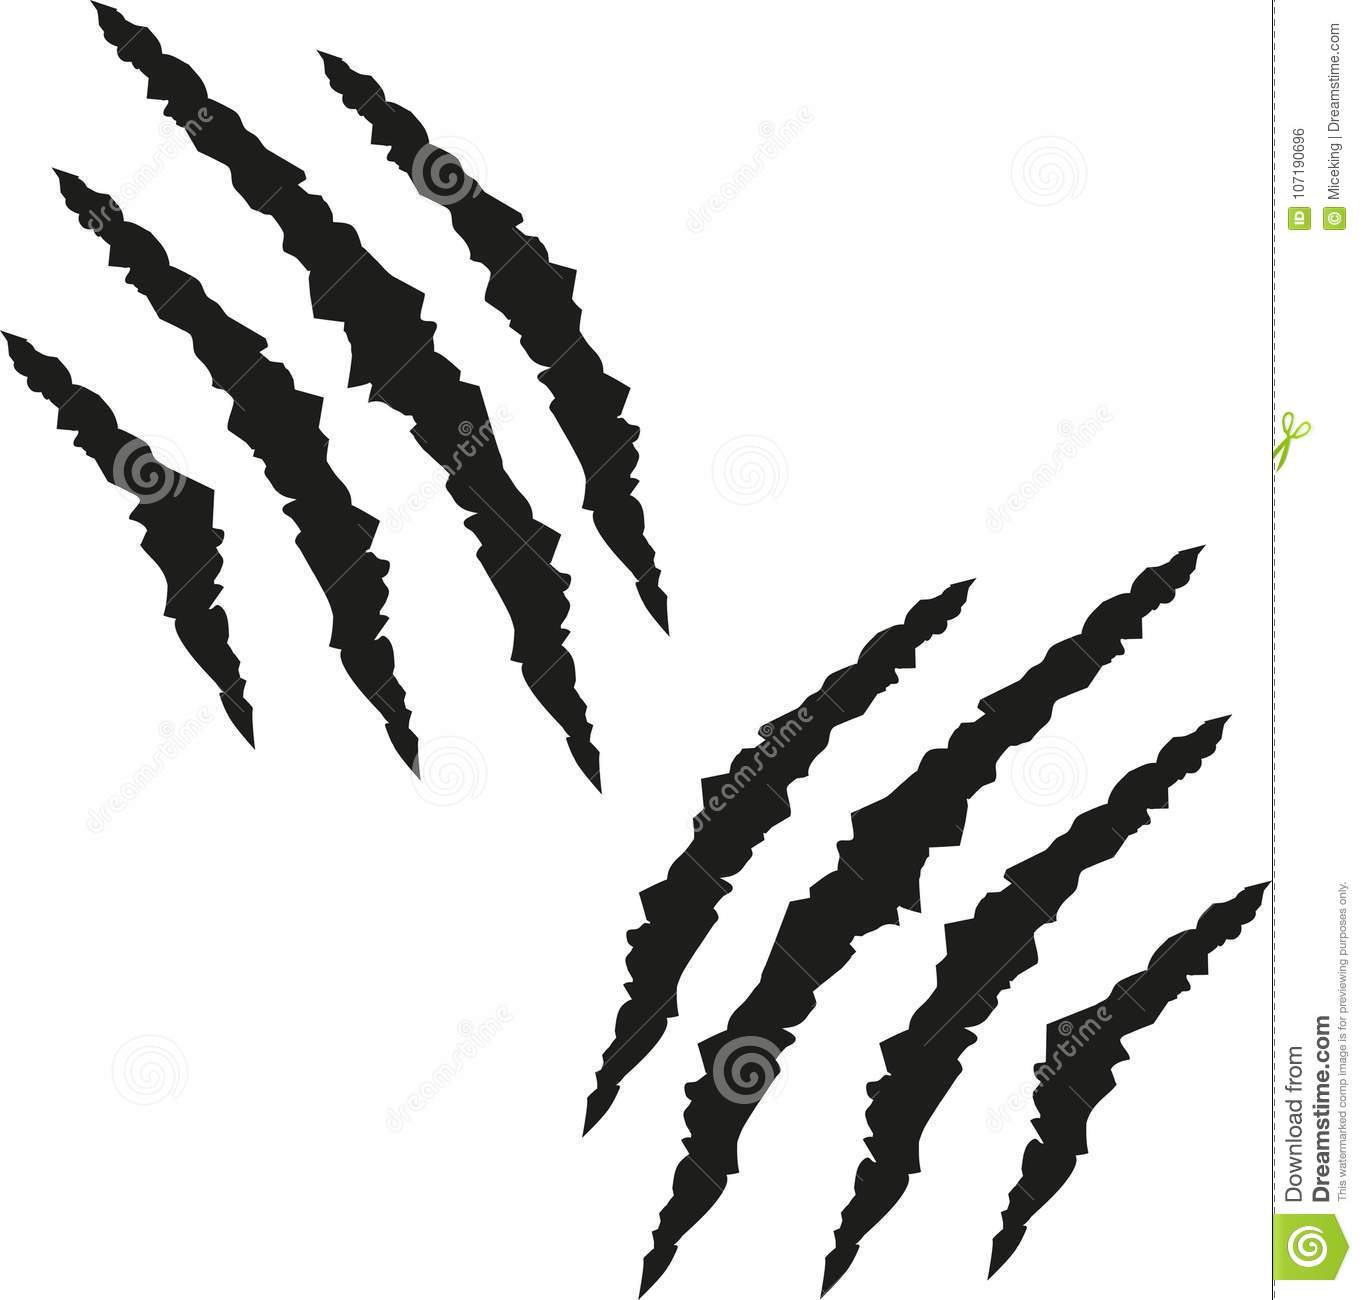 hight resolution of claw marks stock illustrations 194 claw marks stock illustrations vectors clipart dreamstime